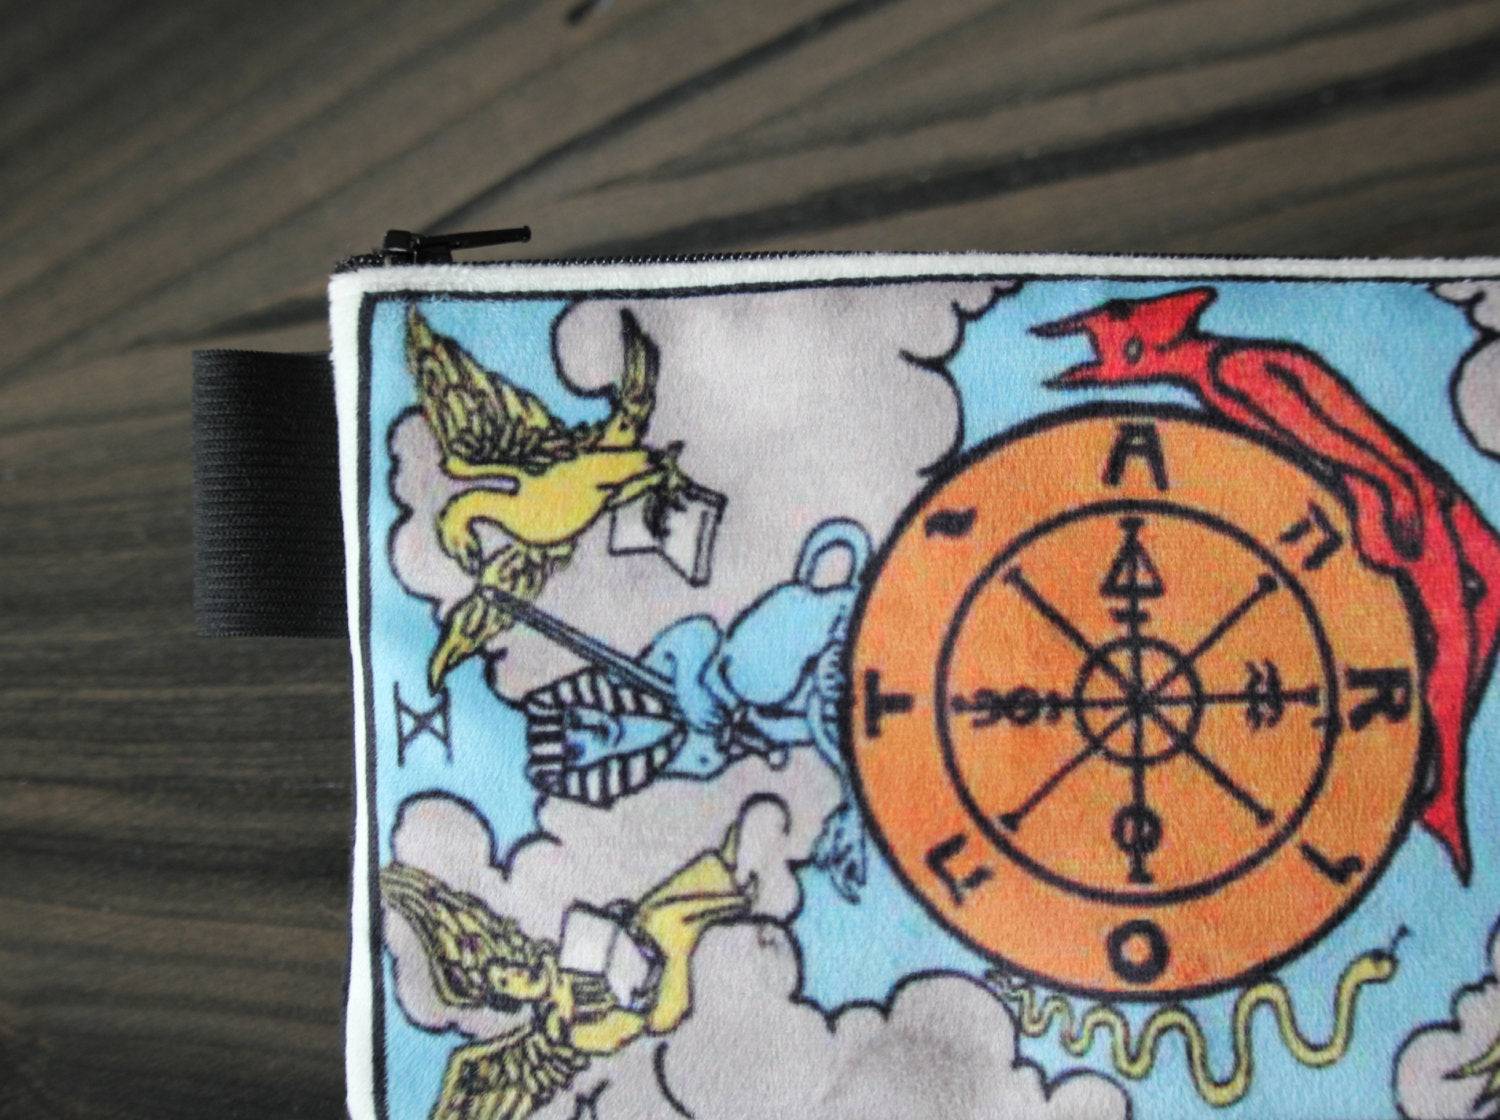 wheel of fortune - lined velveteen pencil case - major arcana tarot card series